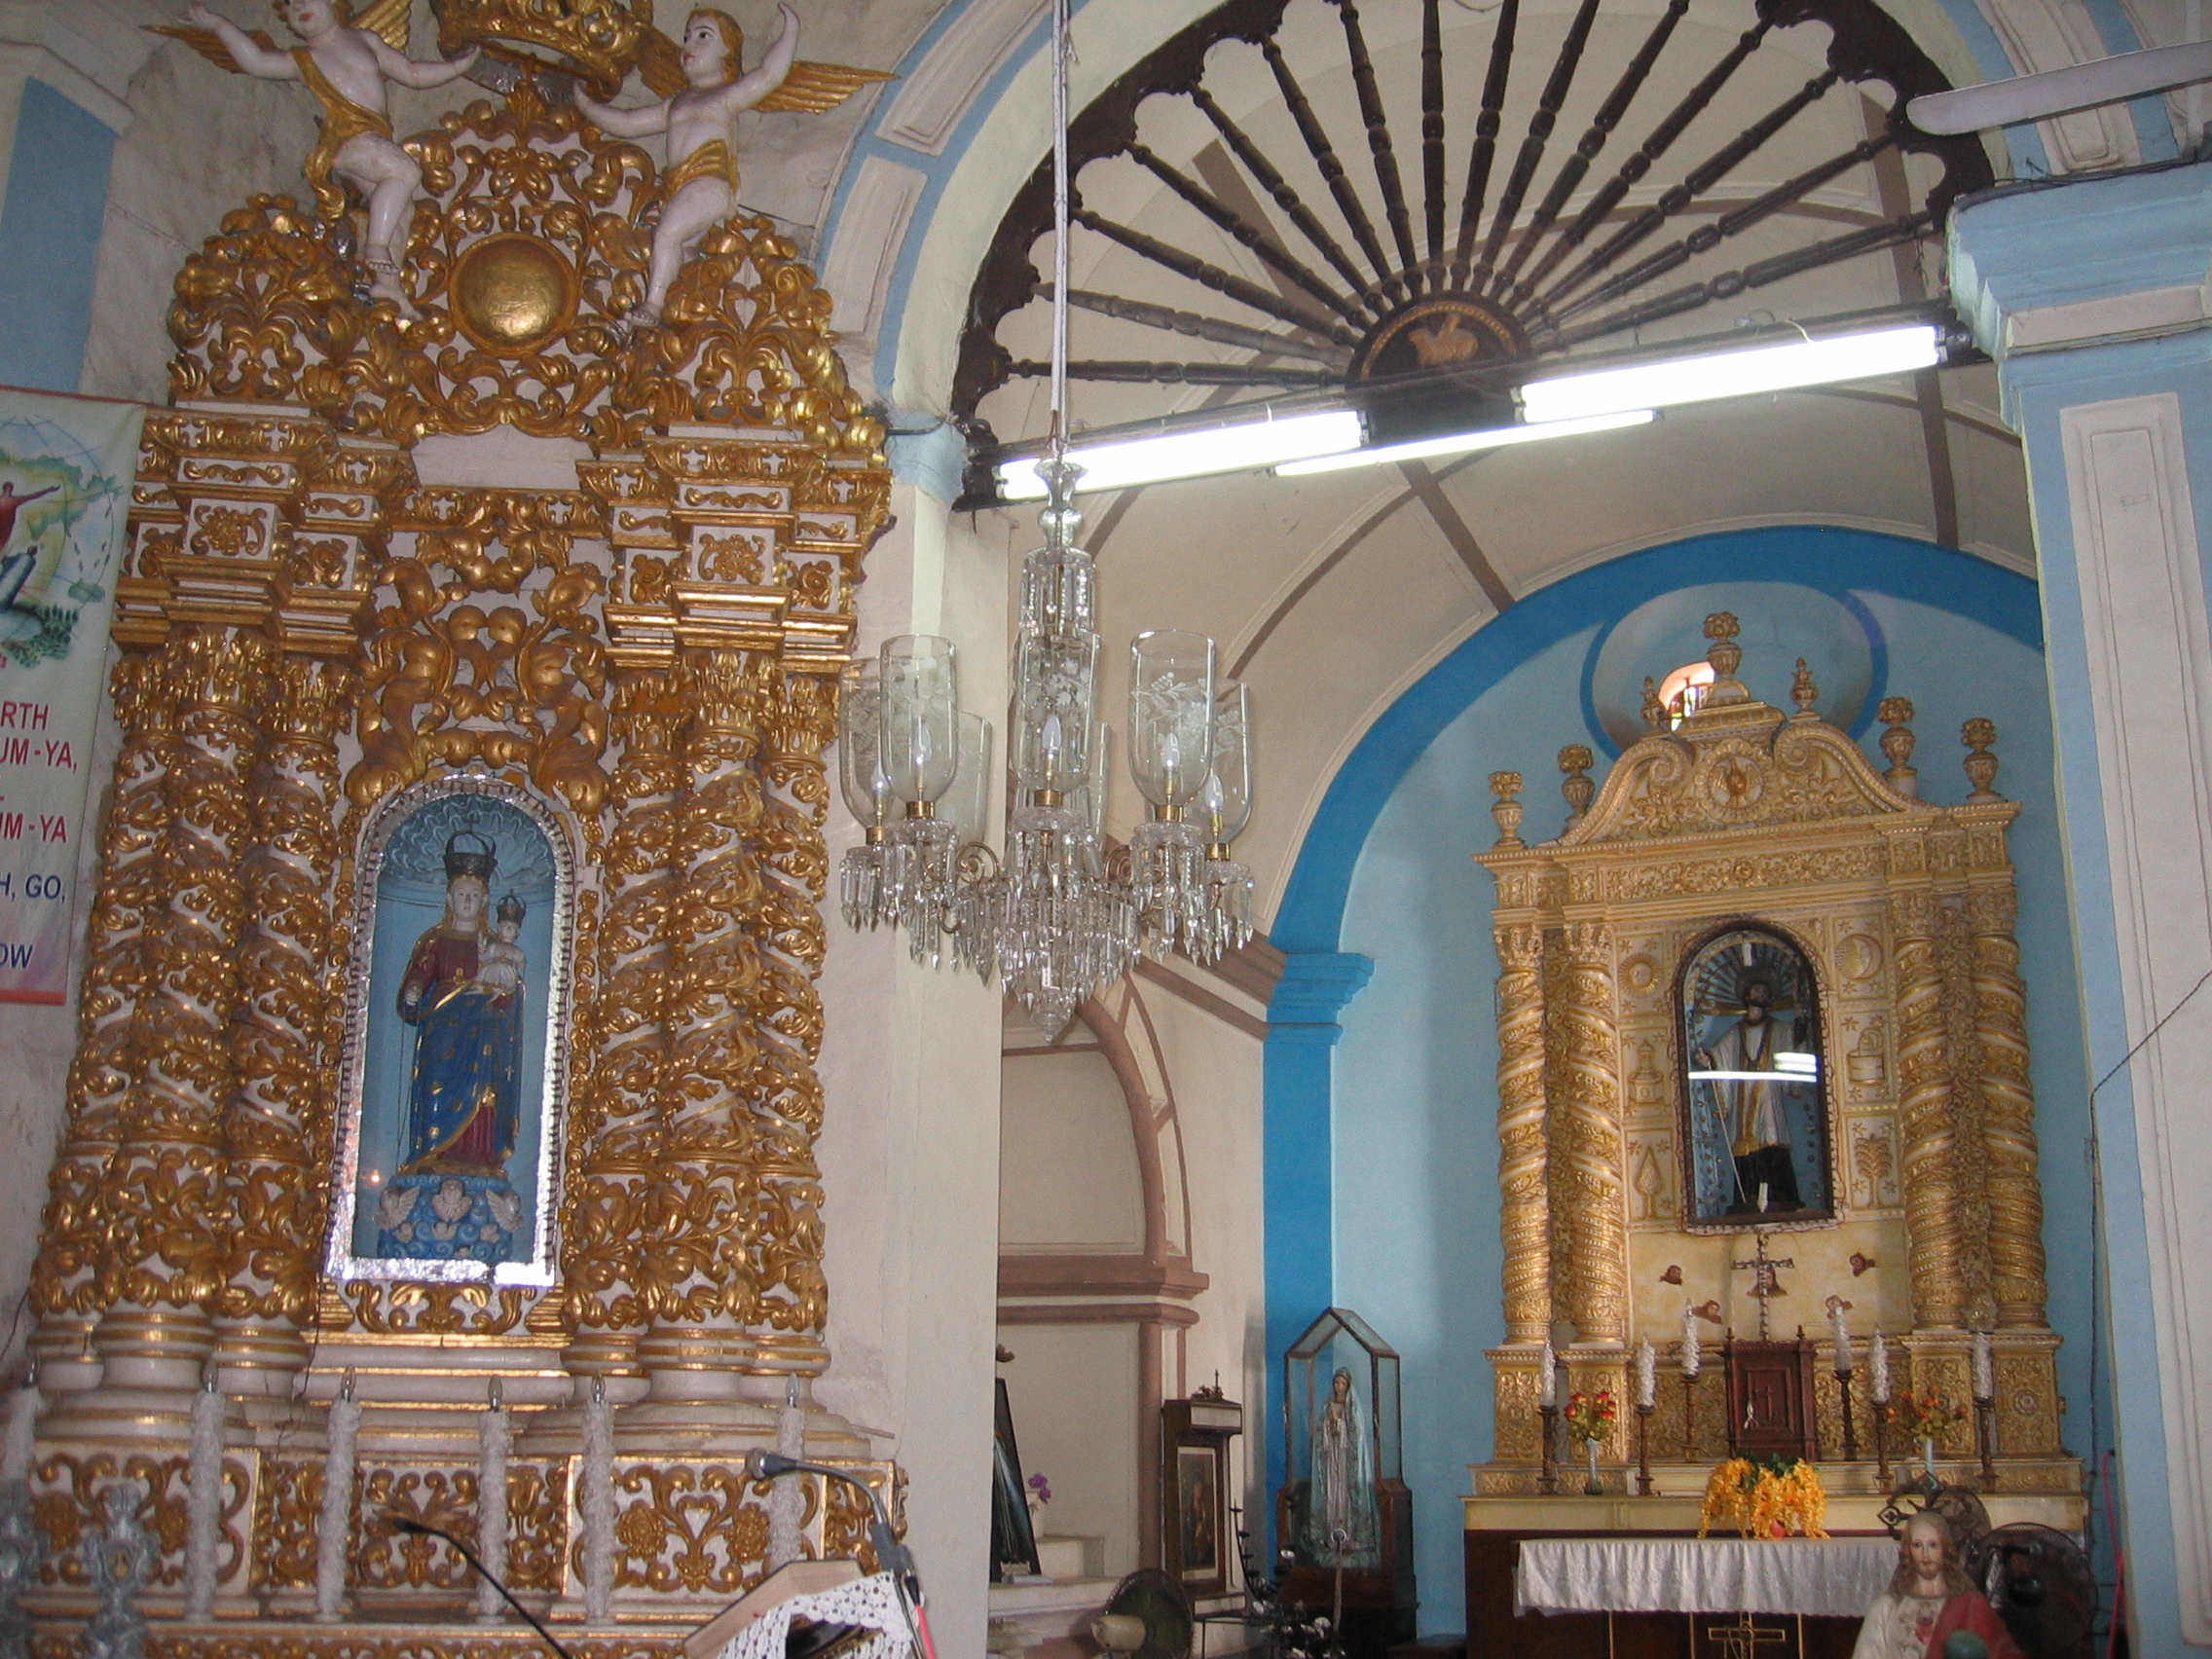 Church of Mary Immaculate Conception in Panjim, Goa